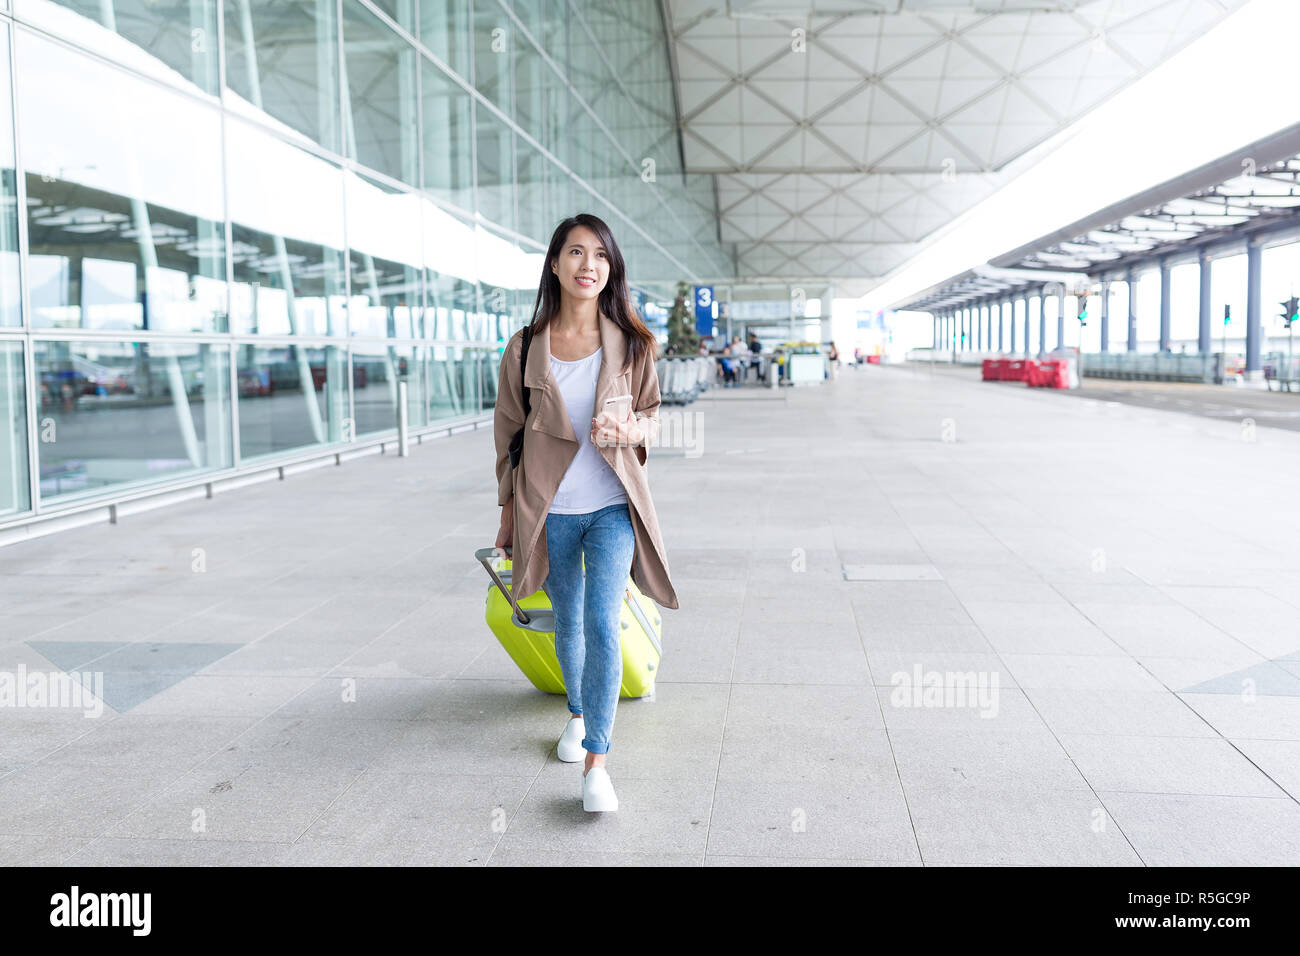 Woman walking with luggage in airport - Stock Image